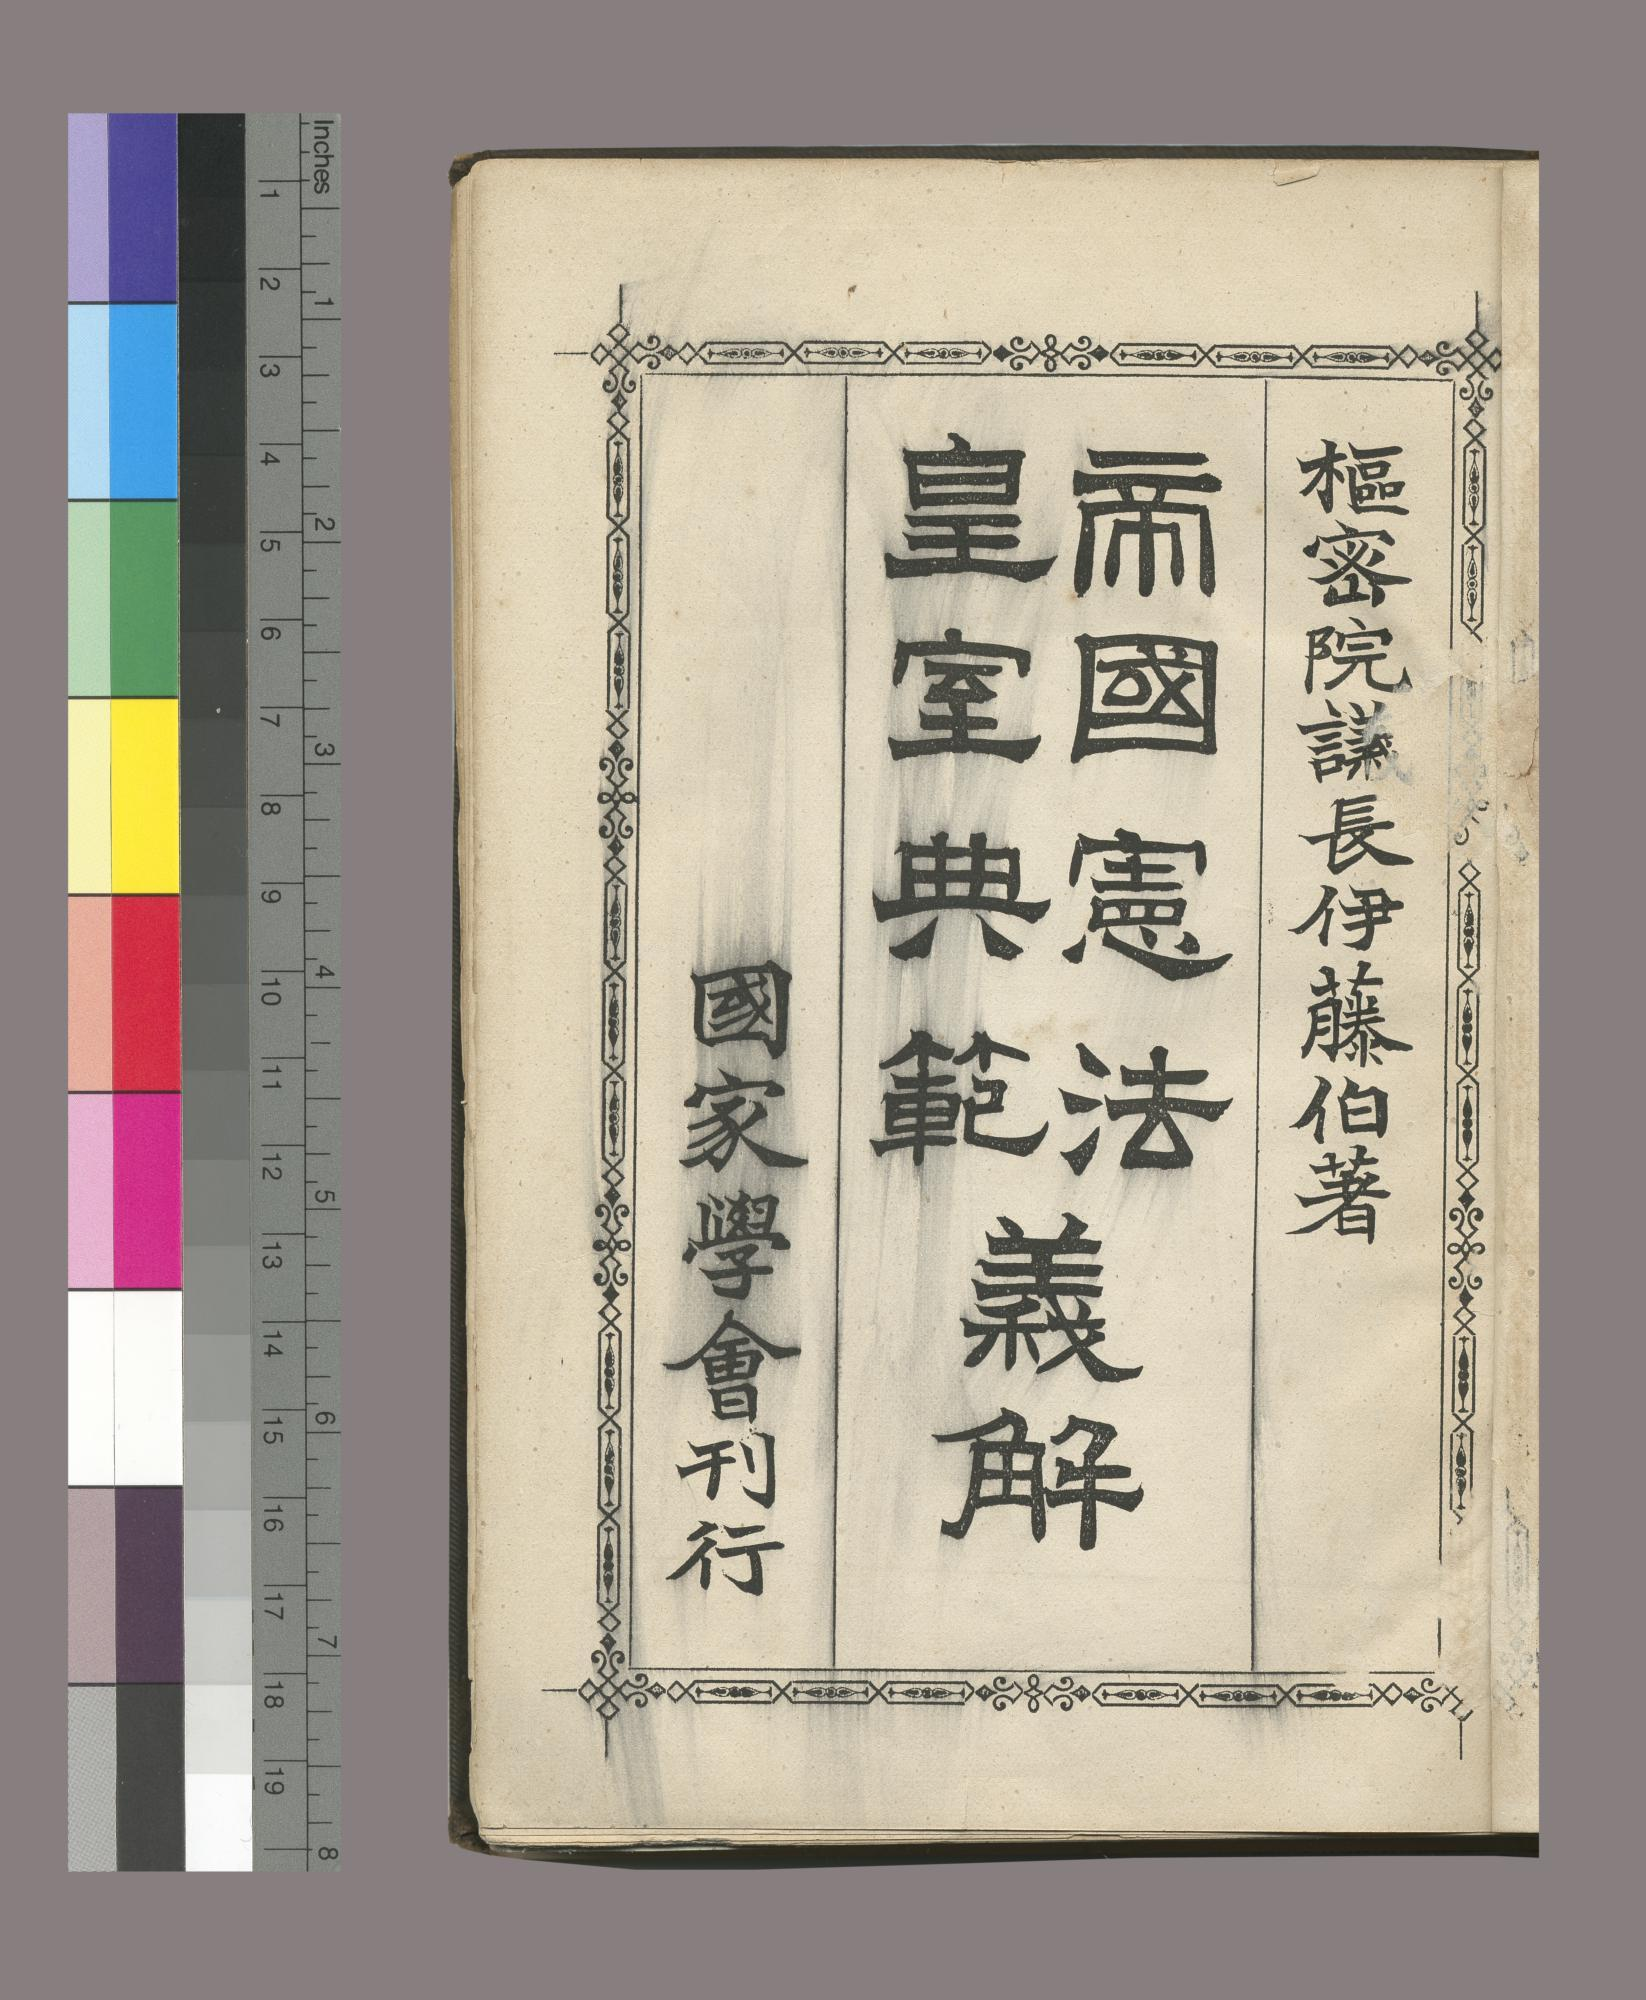 Teikoku kenpō, Kōshitsu tenpan gige [Commentaries on the Constitution of the Empire of Japan and Imperial ordinance]